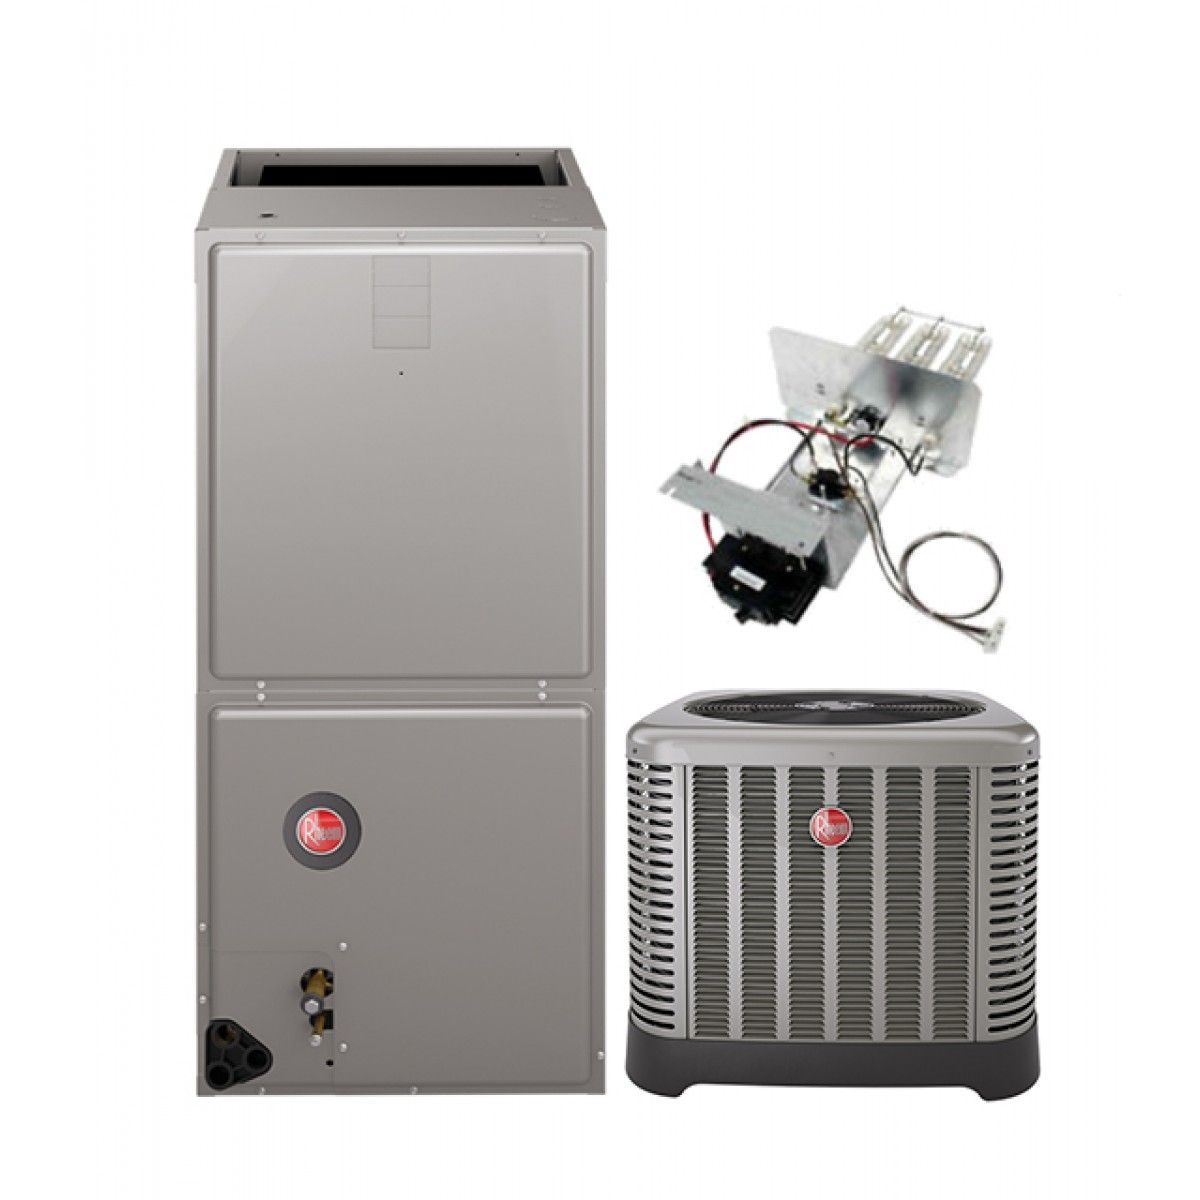 Rheem 3 0 Ton 14 Seer Air Conditioning System With